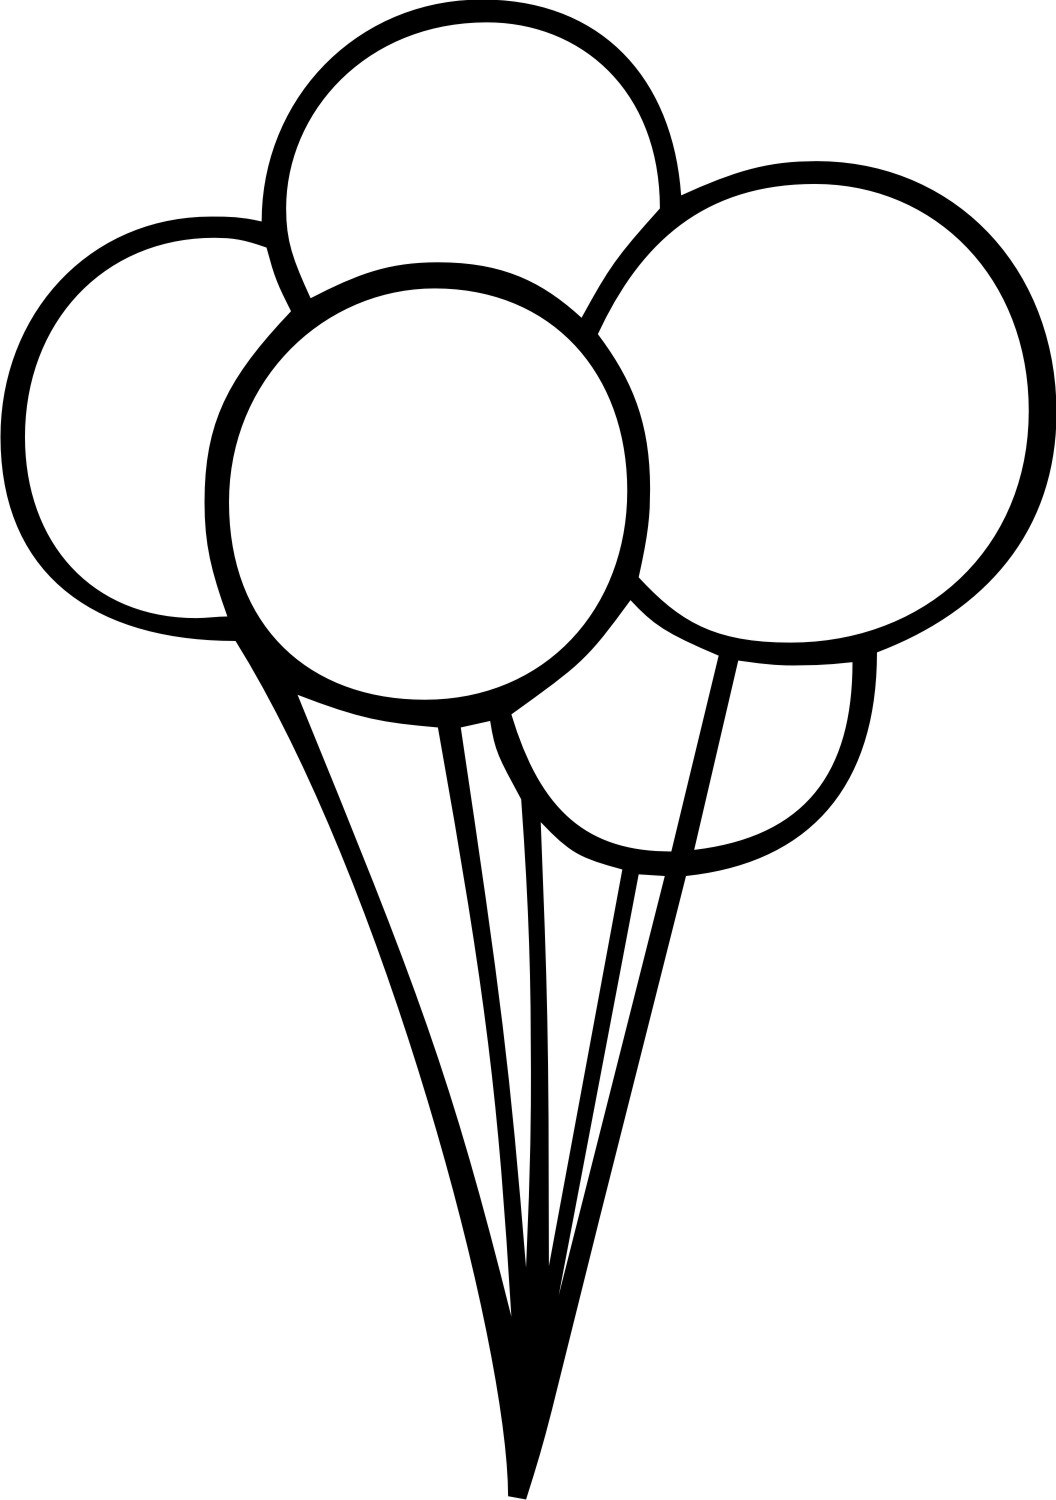 Free Clipart How To Make Cheerleading Pom Poms At Home